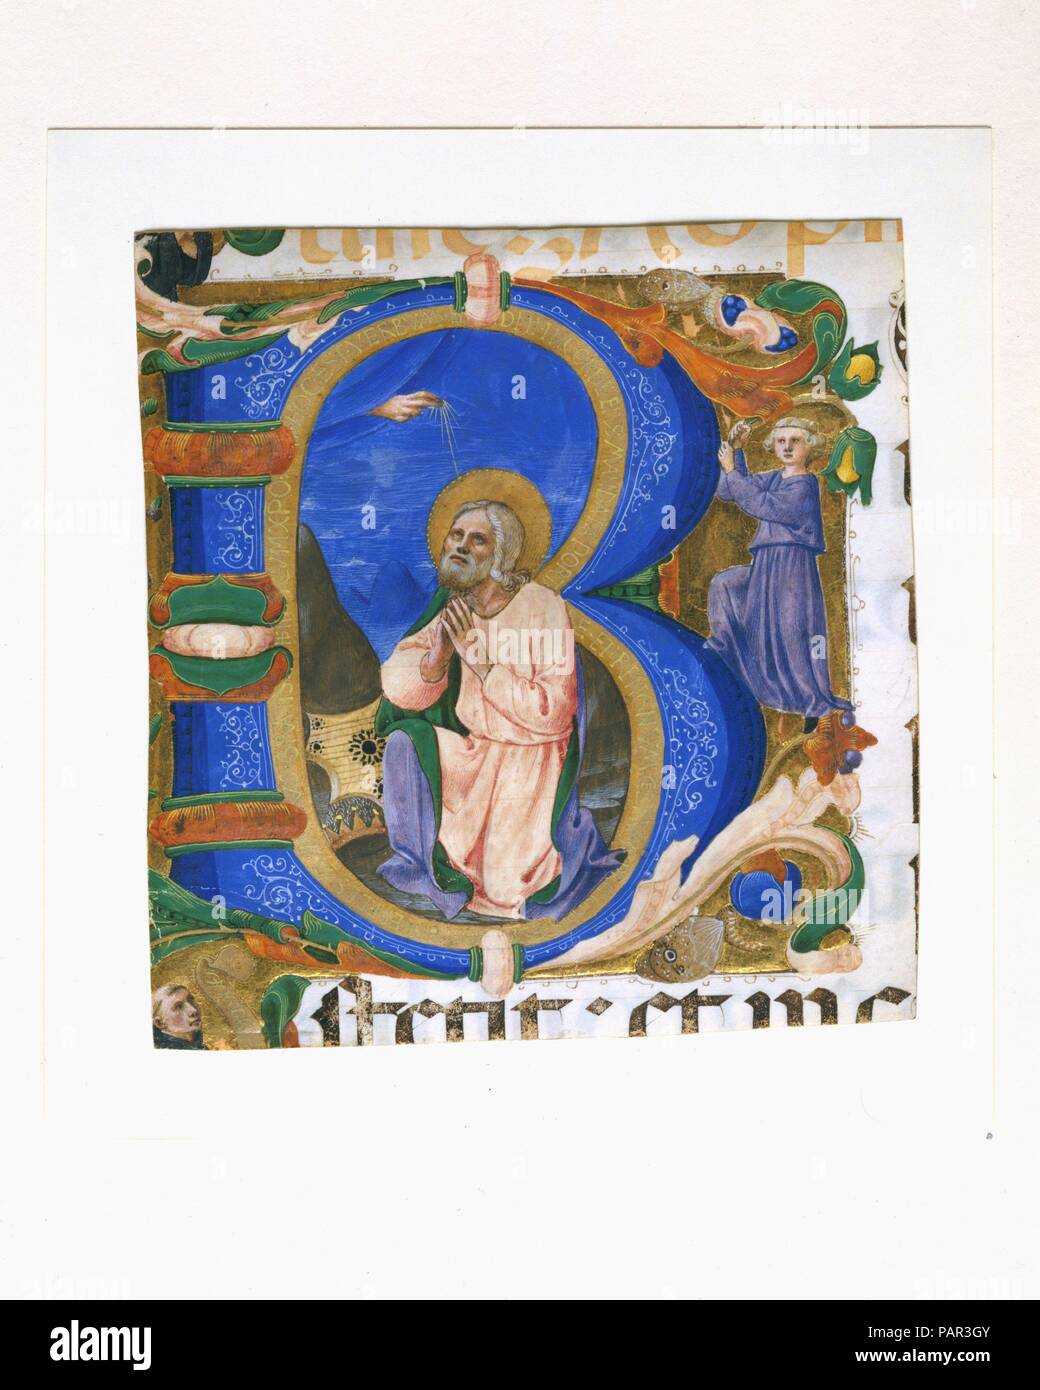 "King David in Prayer in an Initial B. Artist: Zanobi Strozzi (Italian, Florence 1412-1468 Florence). Dimensions: 5 5/8 x 5 3/8 in. (14.2 x 13.5cm)  Initial Ground: 4 13/16 x 4 13/16 in.. Date: ca. 1450.  The initial B introduces Psalm 1: B[eatus vir qui non abiit in consilio impiorum et in via peccatorum non] stetit et in c[athedra pestilentiae non sedit] (""Blessed is the man who walks not in the counsel of the wicked, nor stands in the way of sinners, nor sits in the seat of scoffers"").  King David kneels in prayer, his eyes raised toward a vision of the hand of God, blessing him from the hea Stock Photo"